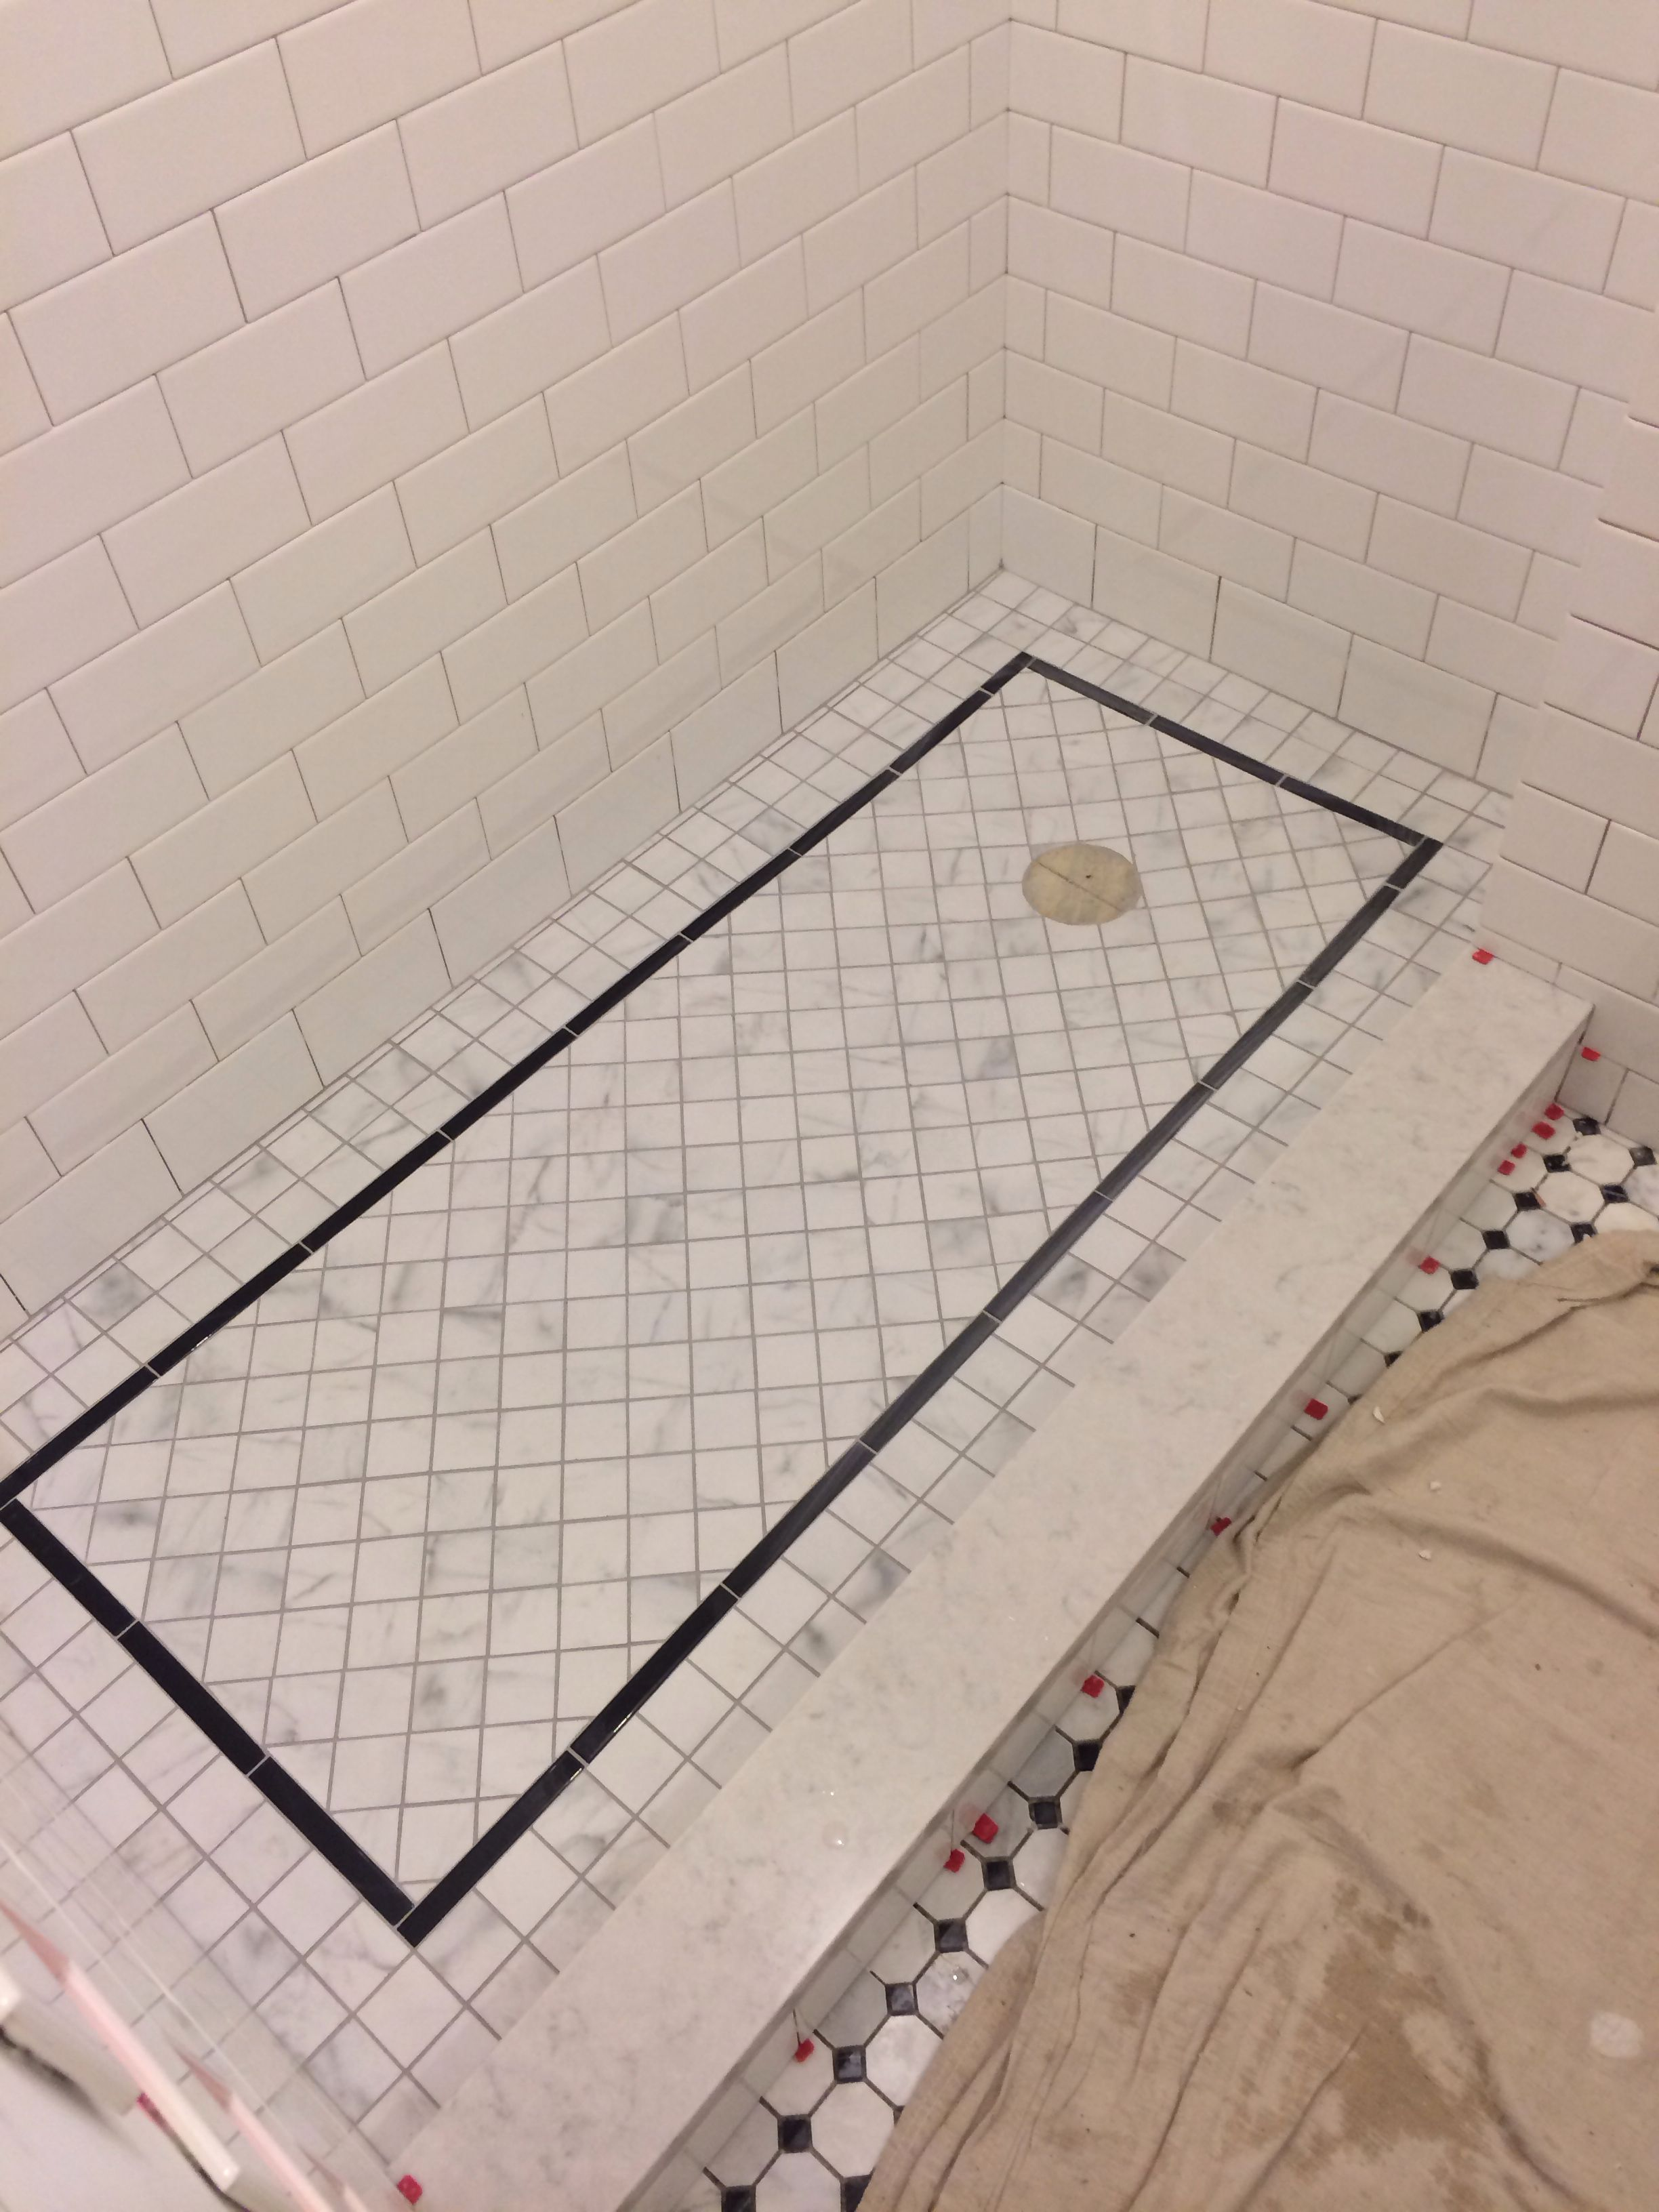 Grouted Shower Floor Silverado Grout Shower Floor Remodel Bathroom Floor Diy Bathroom Remodel